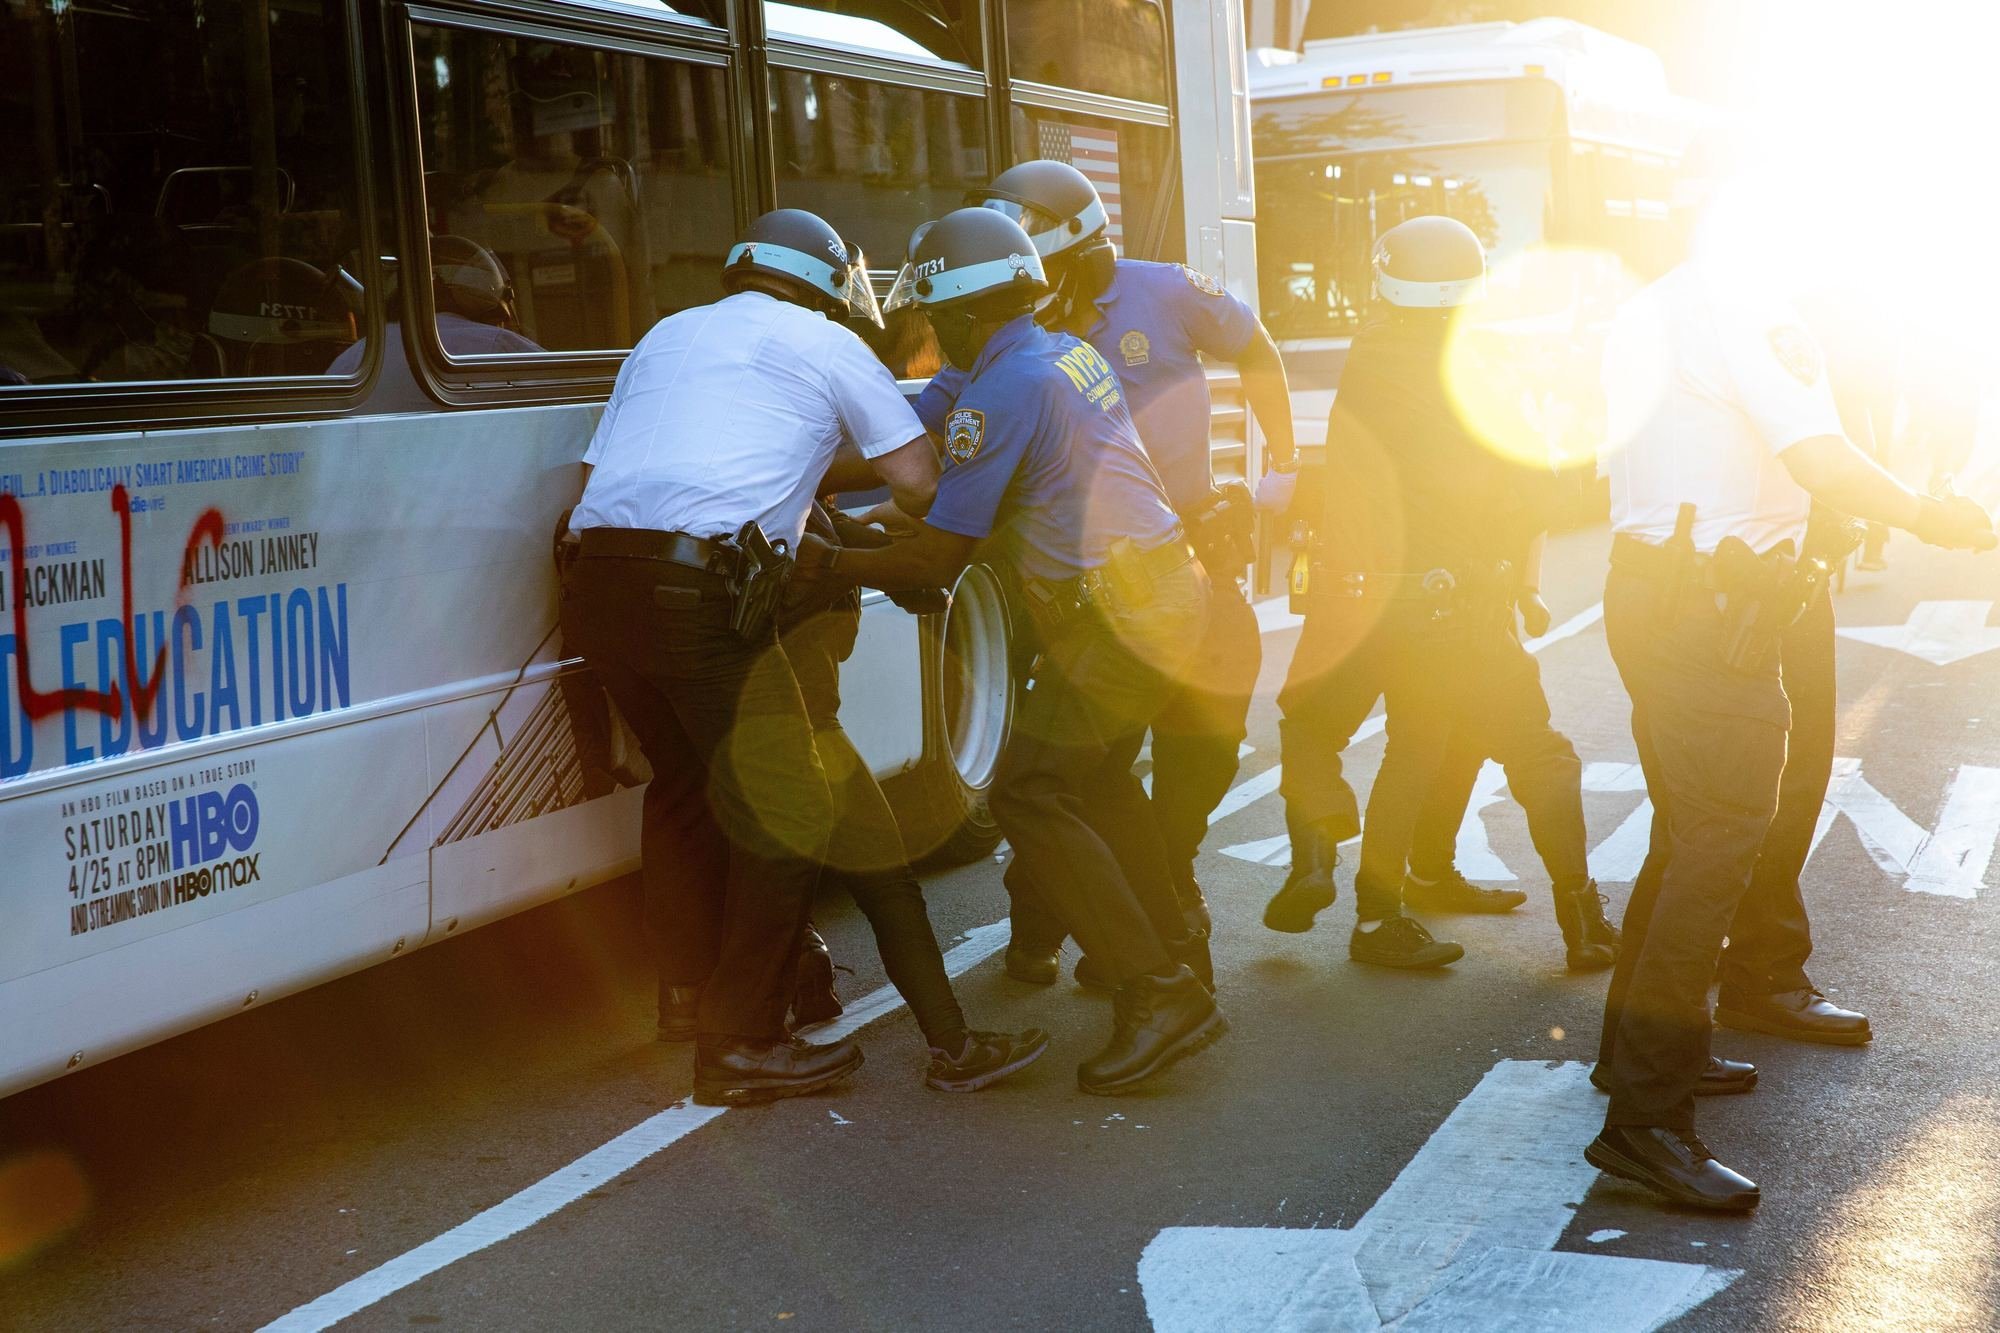 """Police arrest two women for spray painting a local bus in downtown Brooklyn with the acronym FTP (""""Fuck the Police""""). They had started writing """"No Poli…"""" when officers grabbed them, knocking them to the ground."""